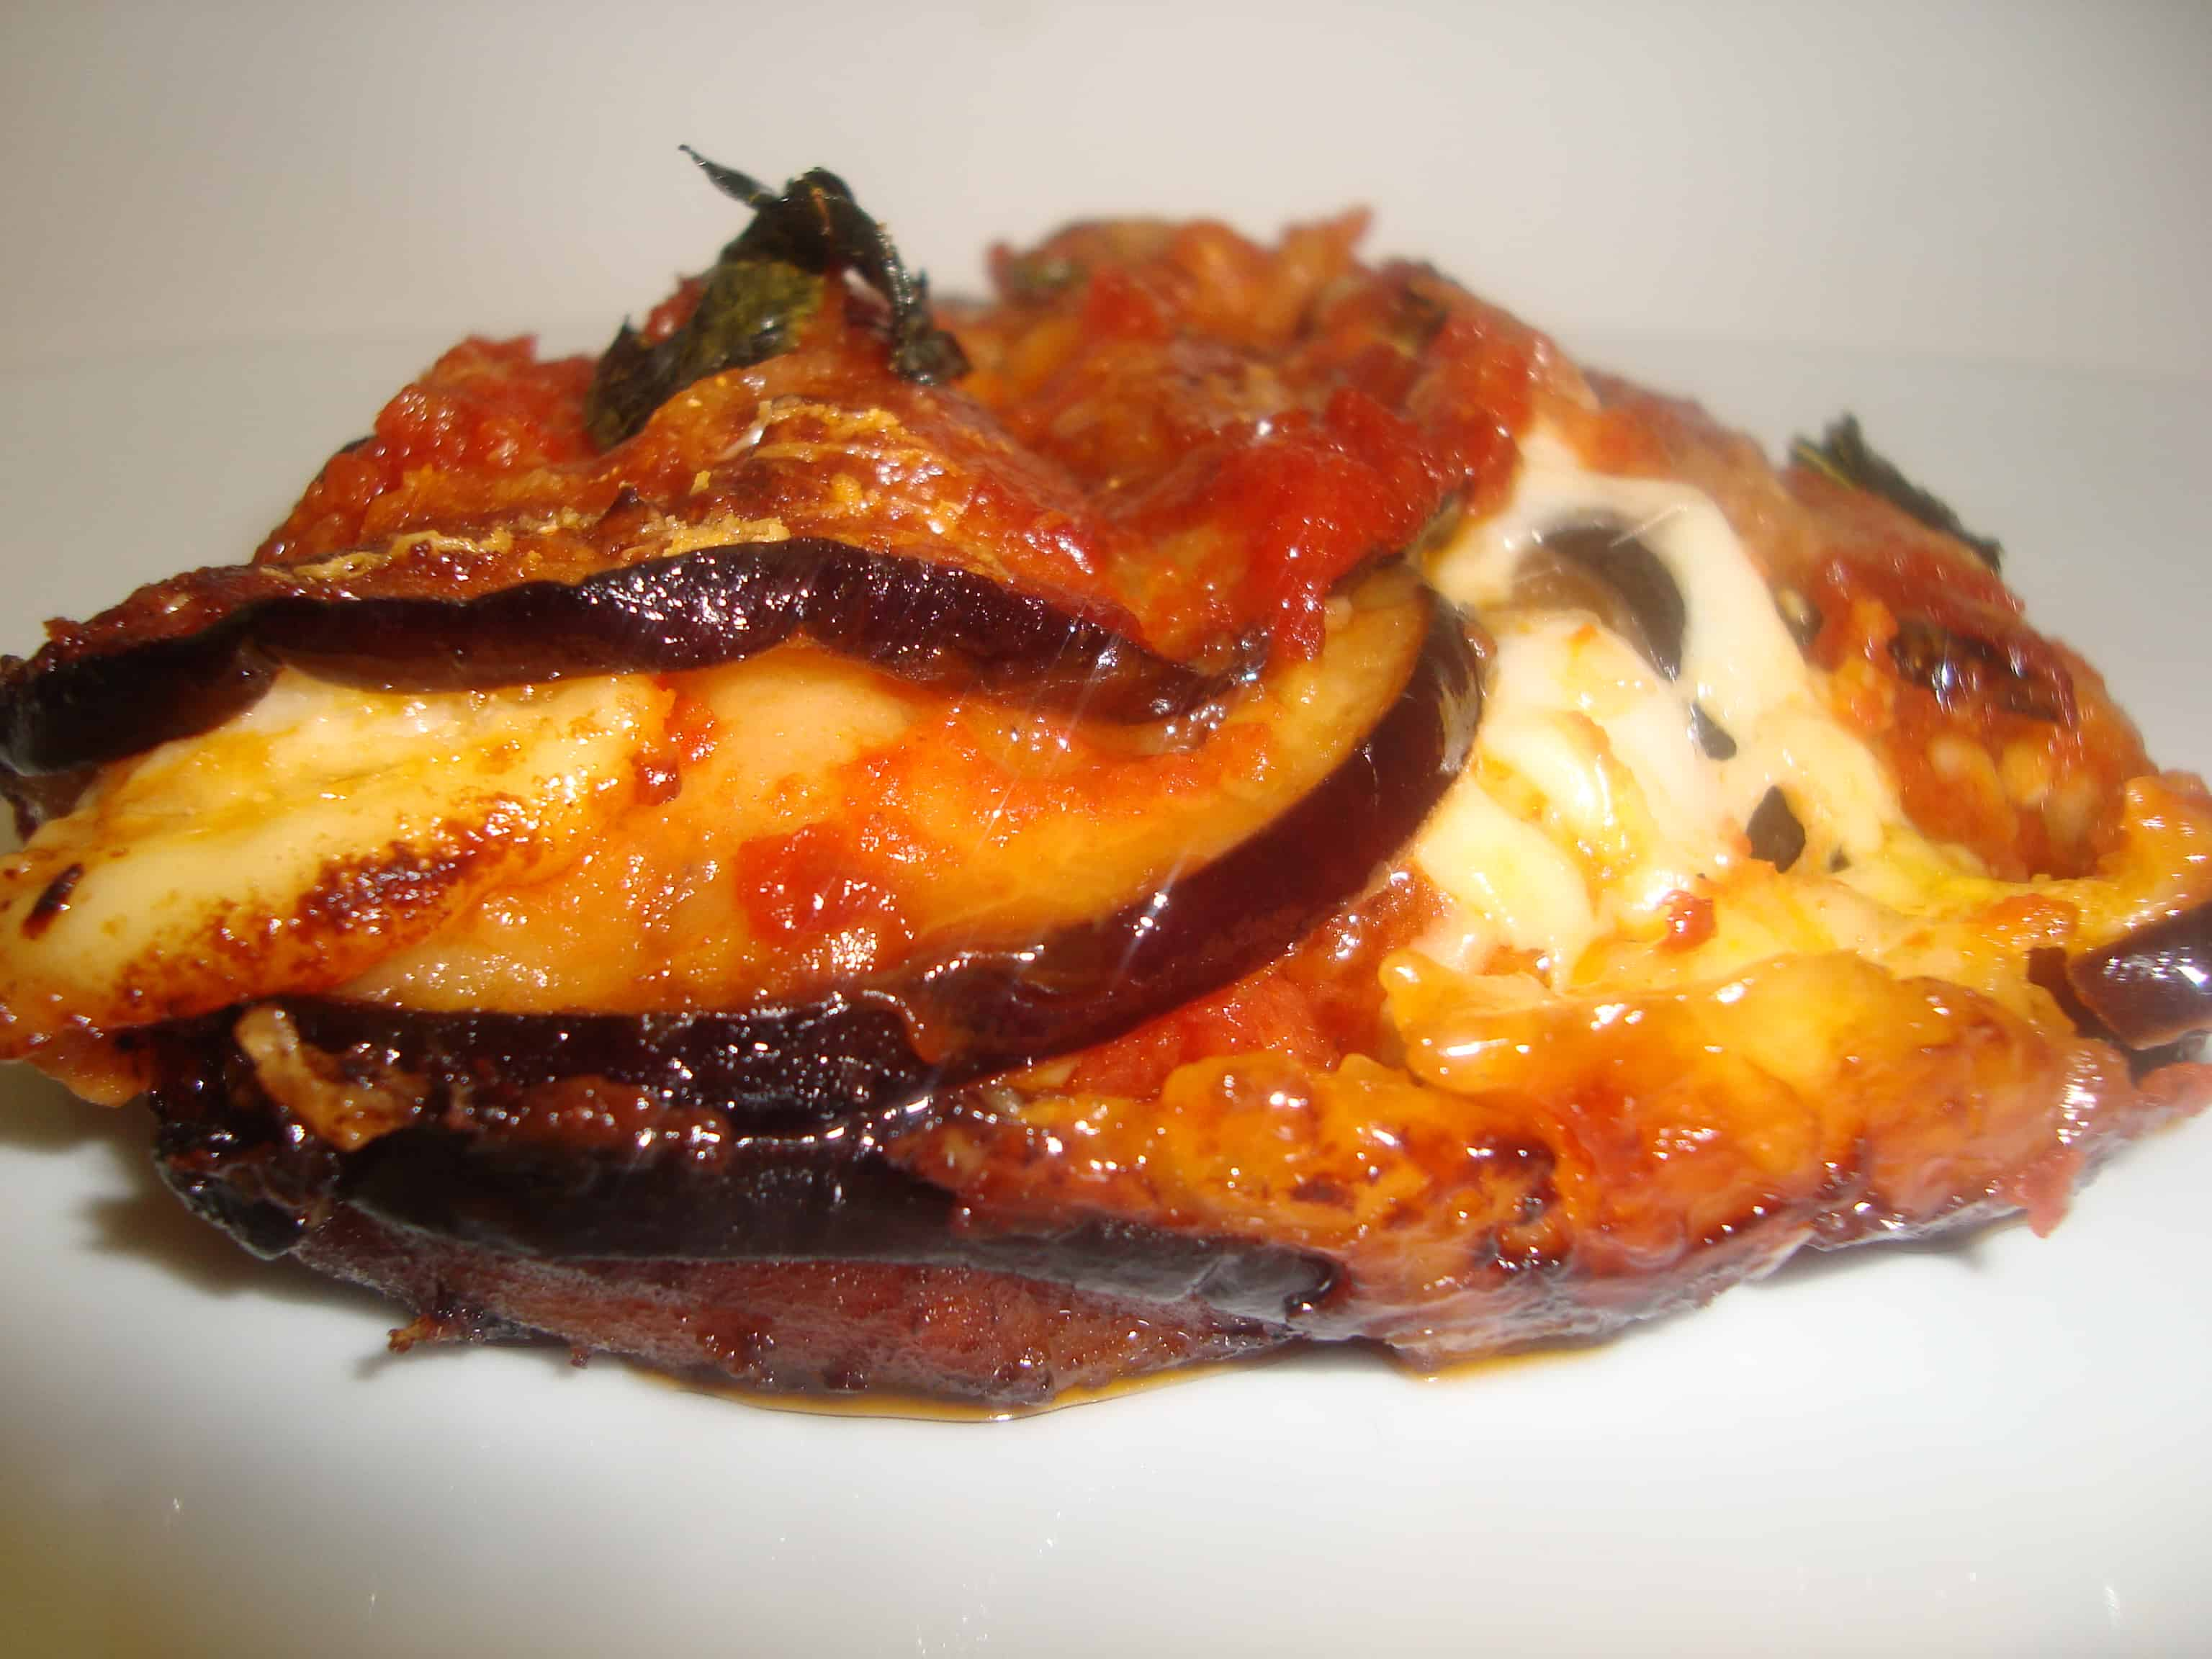 This is a Southern Italian dish. Melanzane means aubergine (eggplant ...